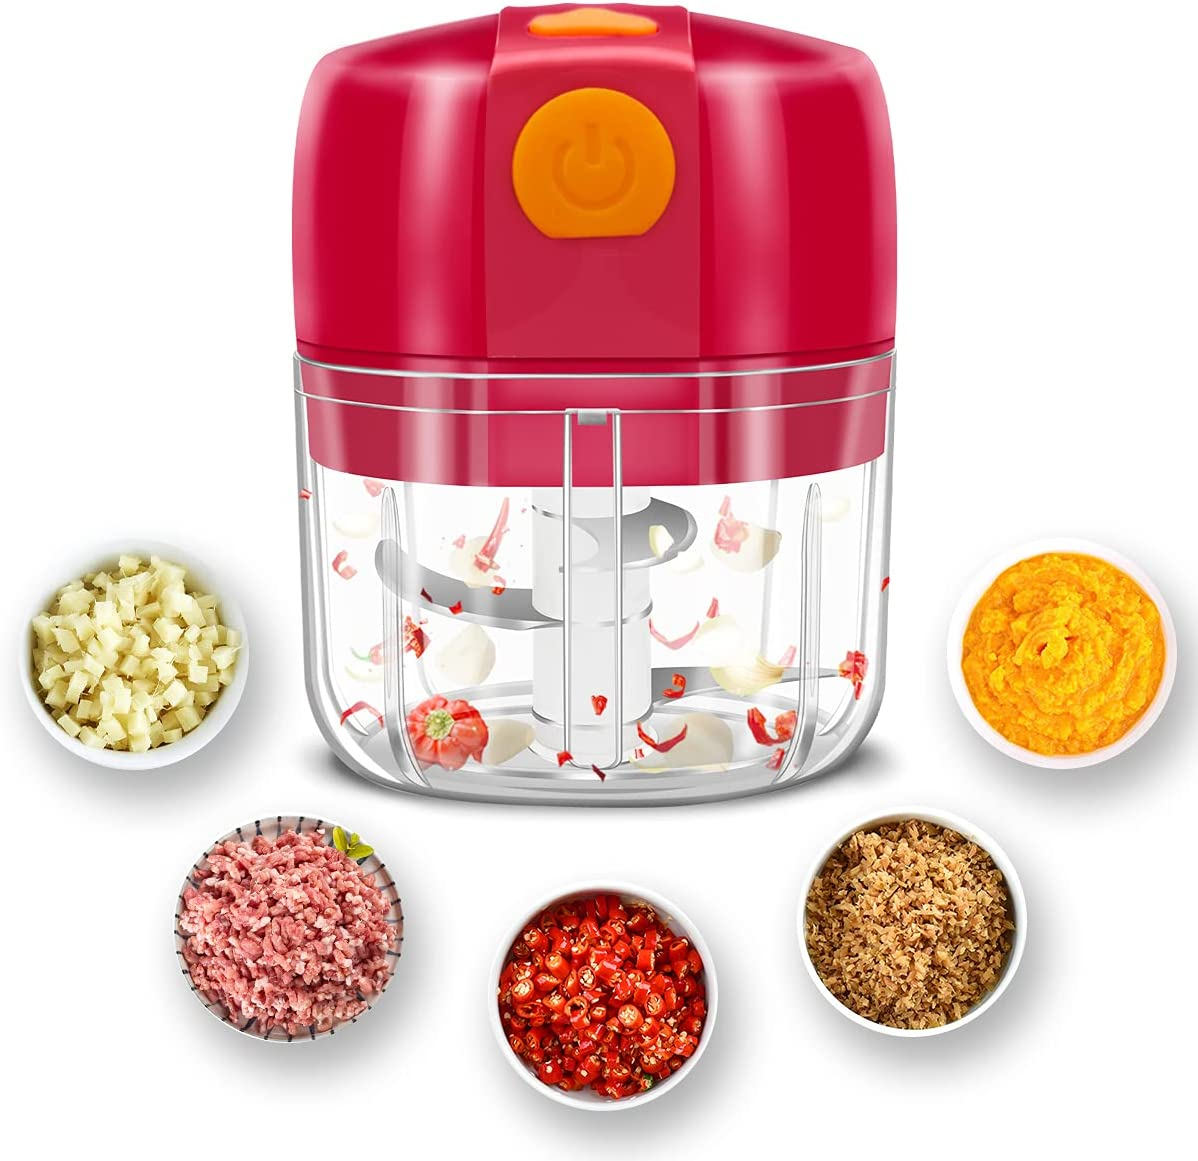 Electric Garlic Chopper Wireless Portable Mini Food Chopper 3 Blades Slicer Grinder for Chili/Onion/Vegetable/Nuts/Meat Small Food Processor Rechargeable Home Use Mini Garlic Masher Grinder